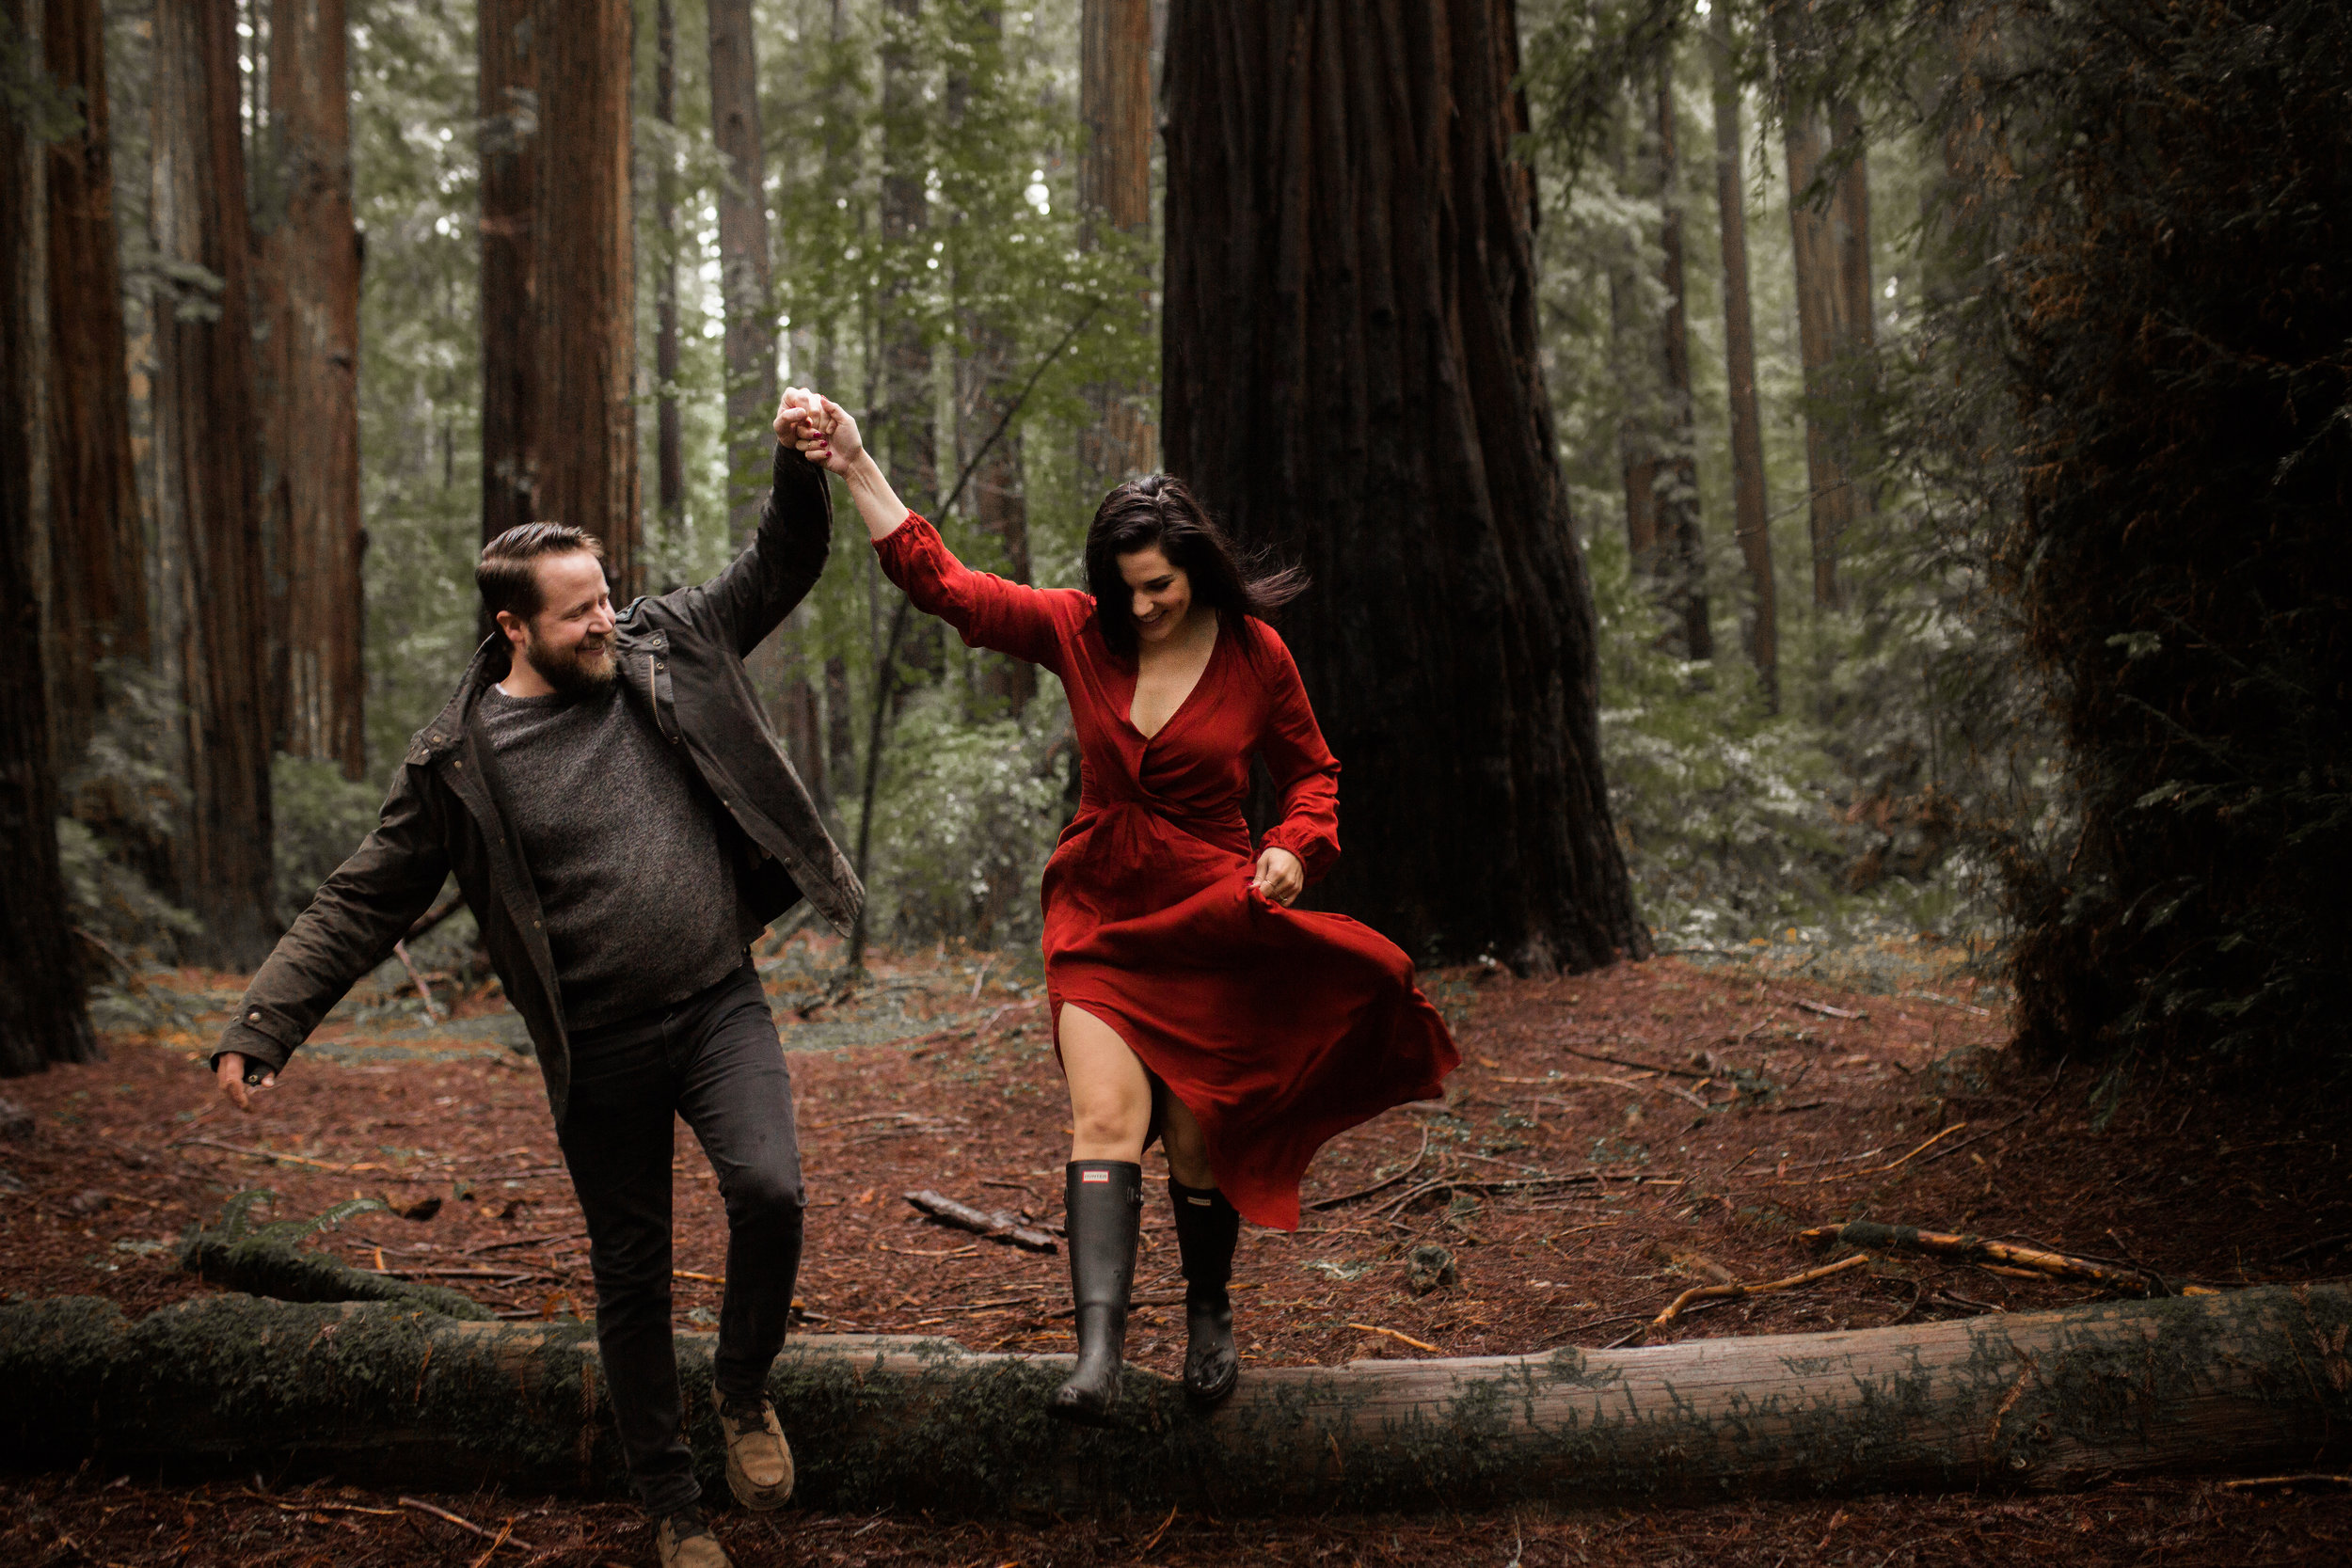 nicole-daacke-photography-redwoods-national-park-forest-rainy-foggy-adventure-engagement-session-humboldt-county-old-growth-redwood-tree-elopement-intimate-wedding-photographer-33.jpg